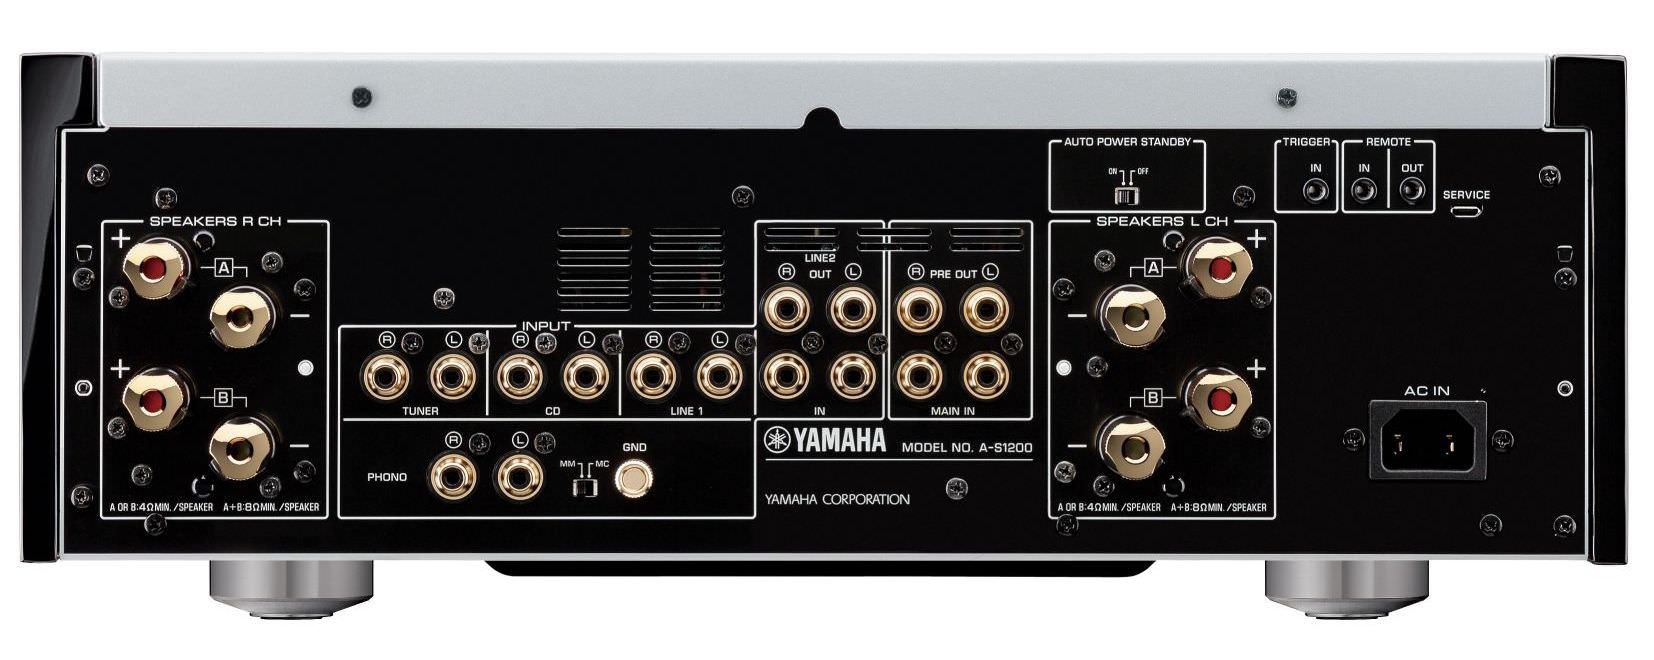 Yamaha A-S1200 Integrated Amplifier Rear View